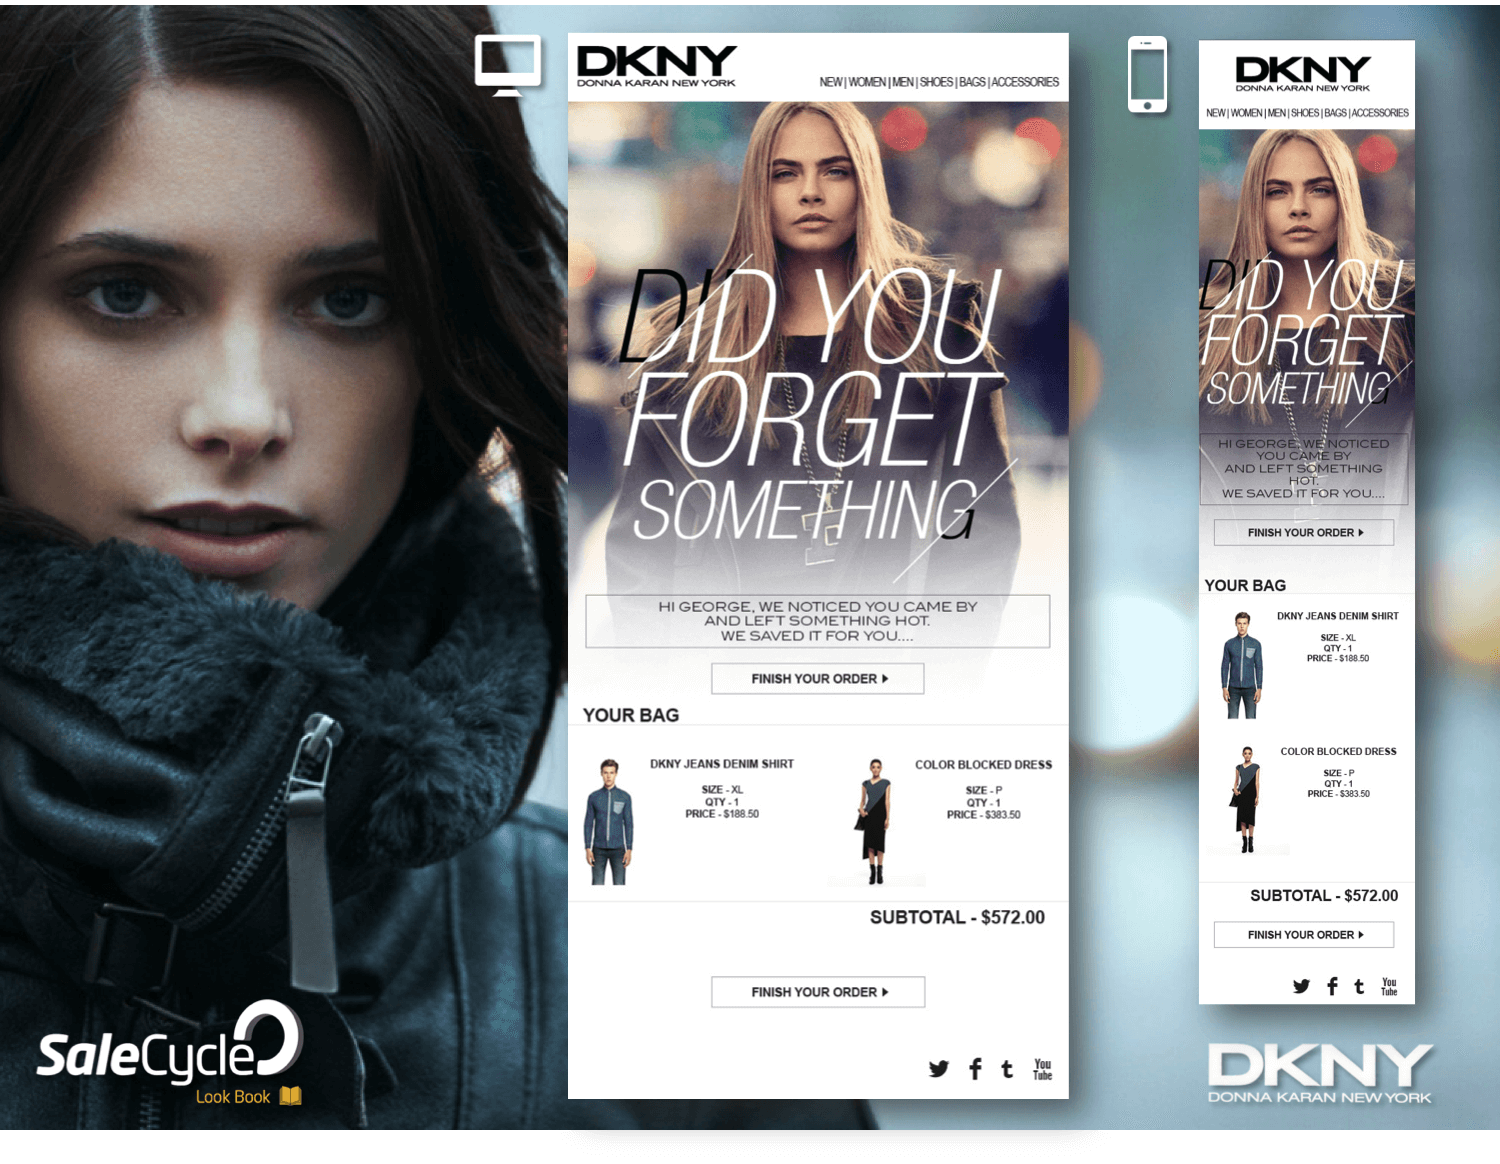 DKNY's Abandoned Cart Email